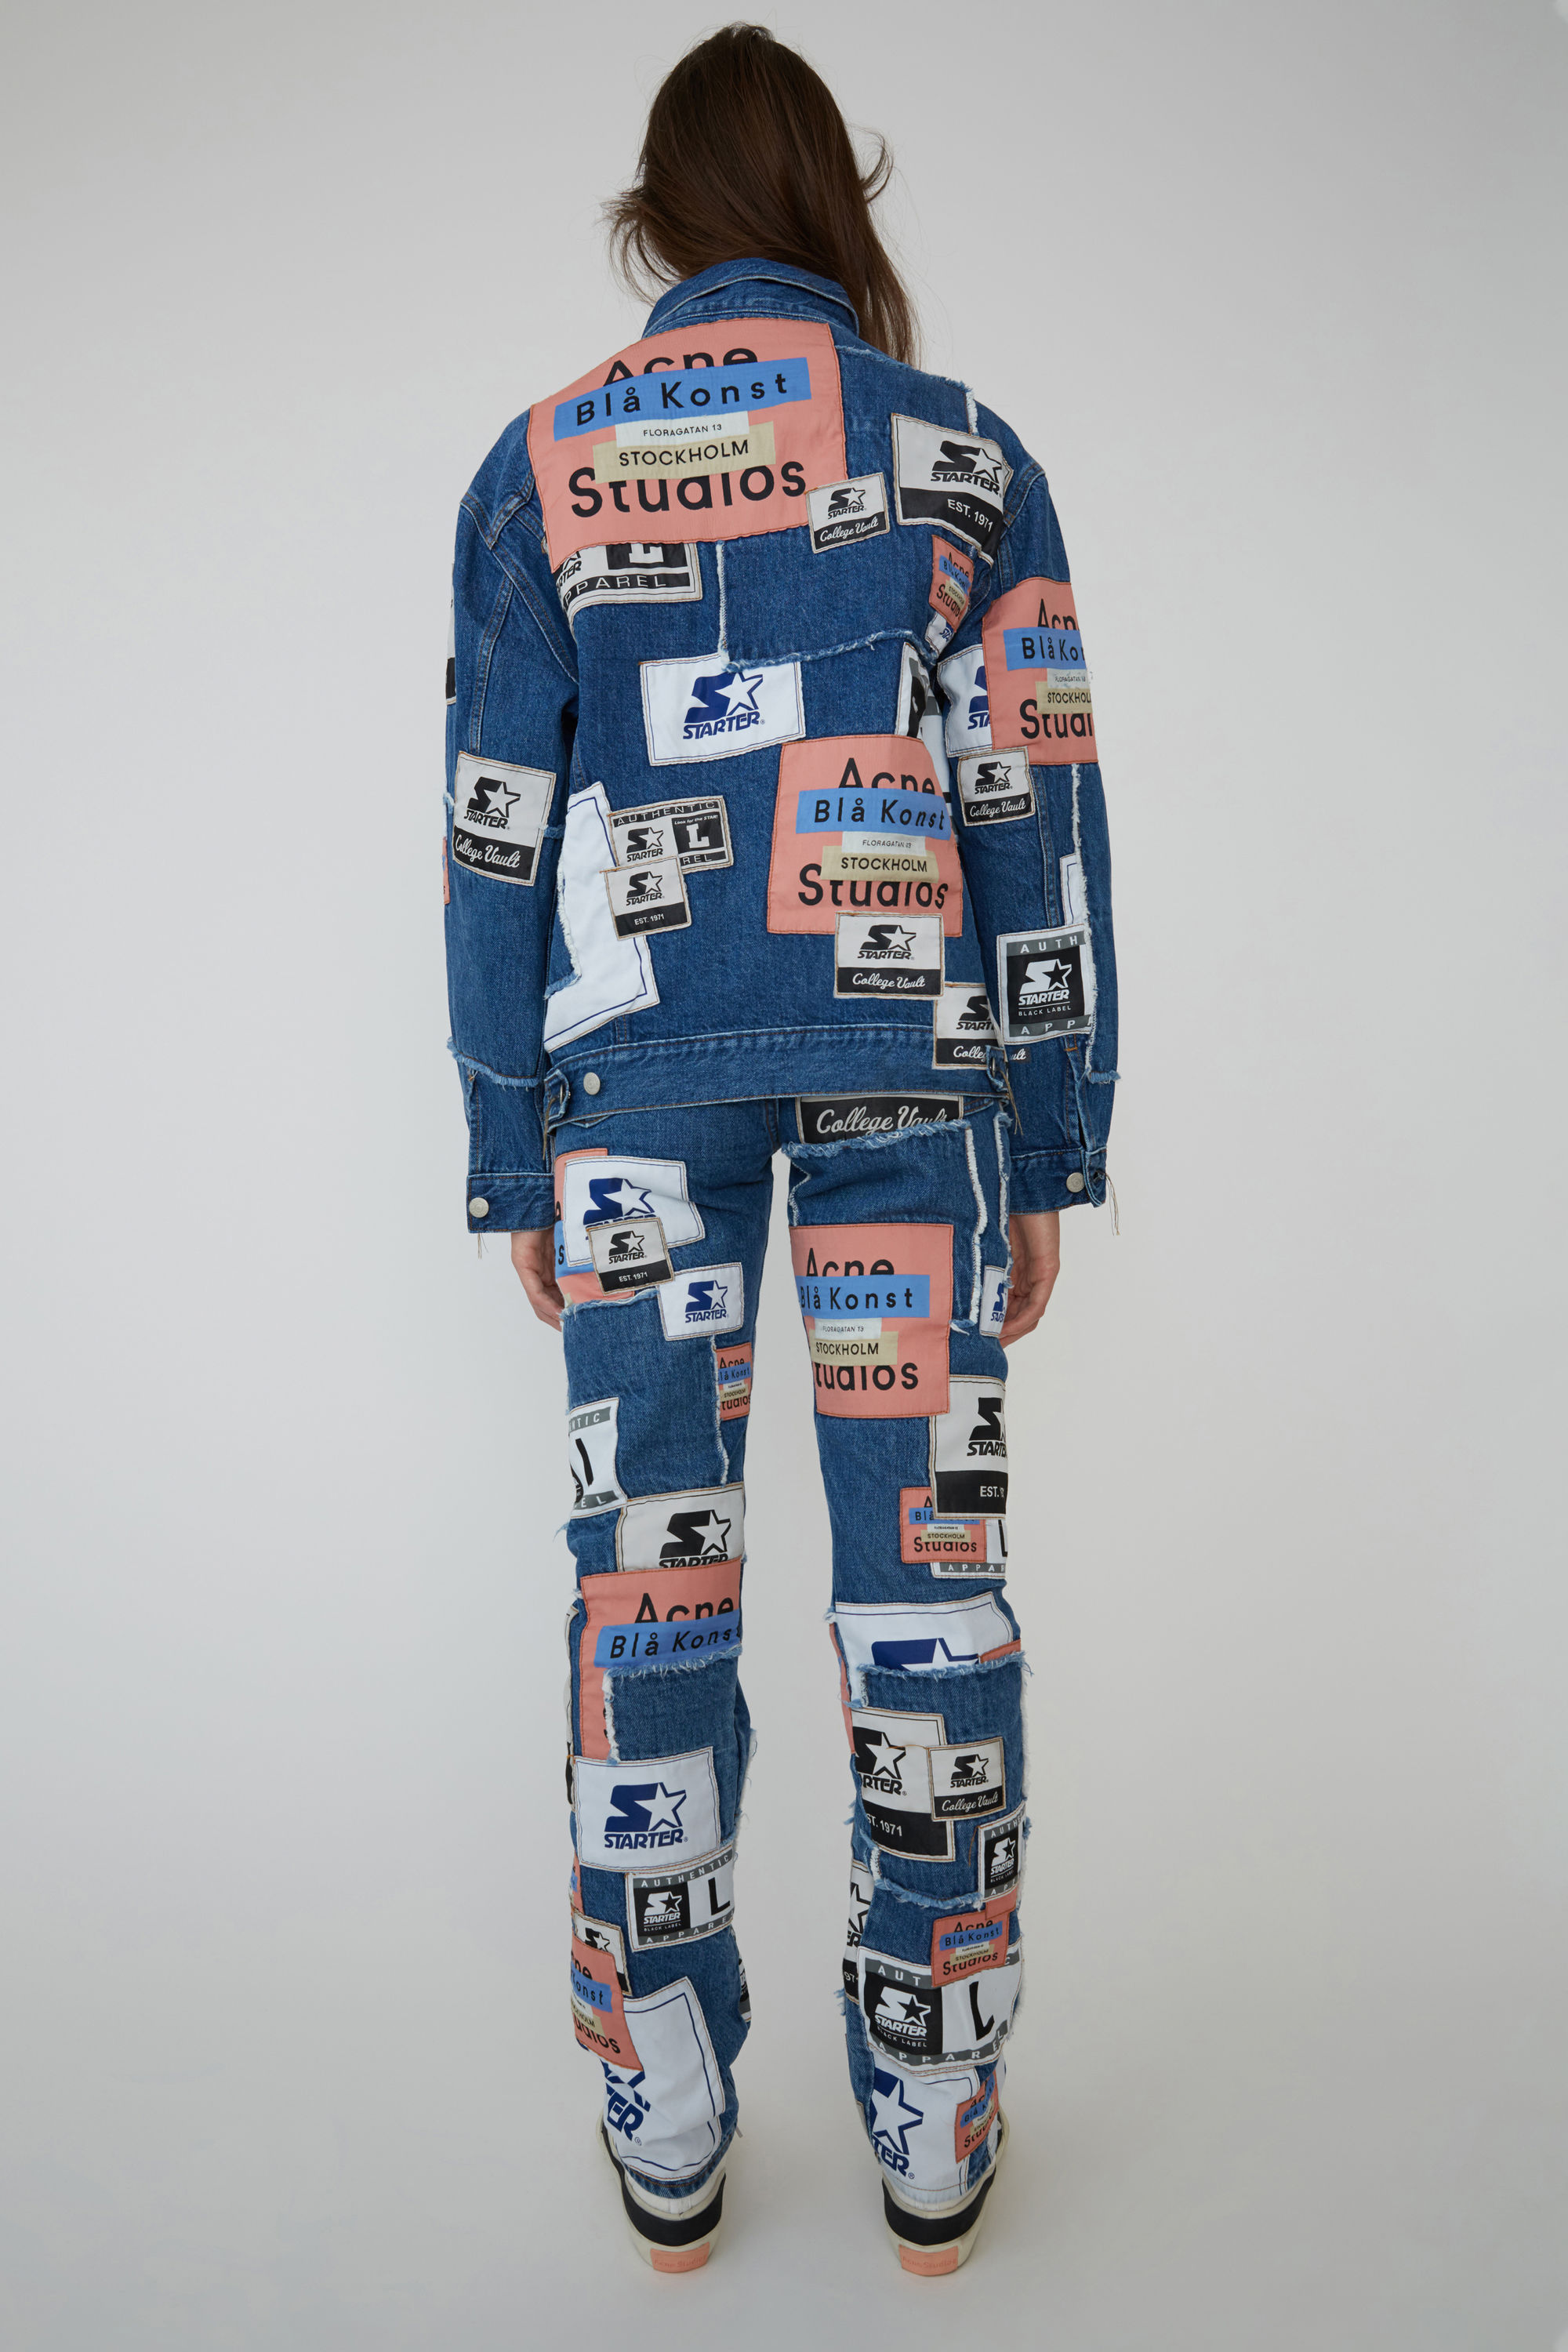 BLÅ KONST Acne Studios 2000 Collab Patch Mid blue 1500x 003